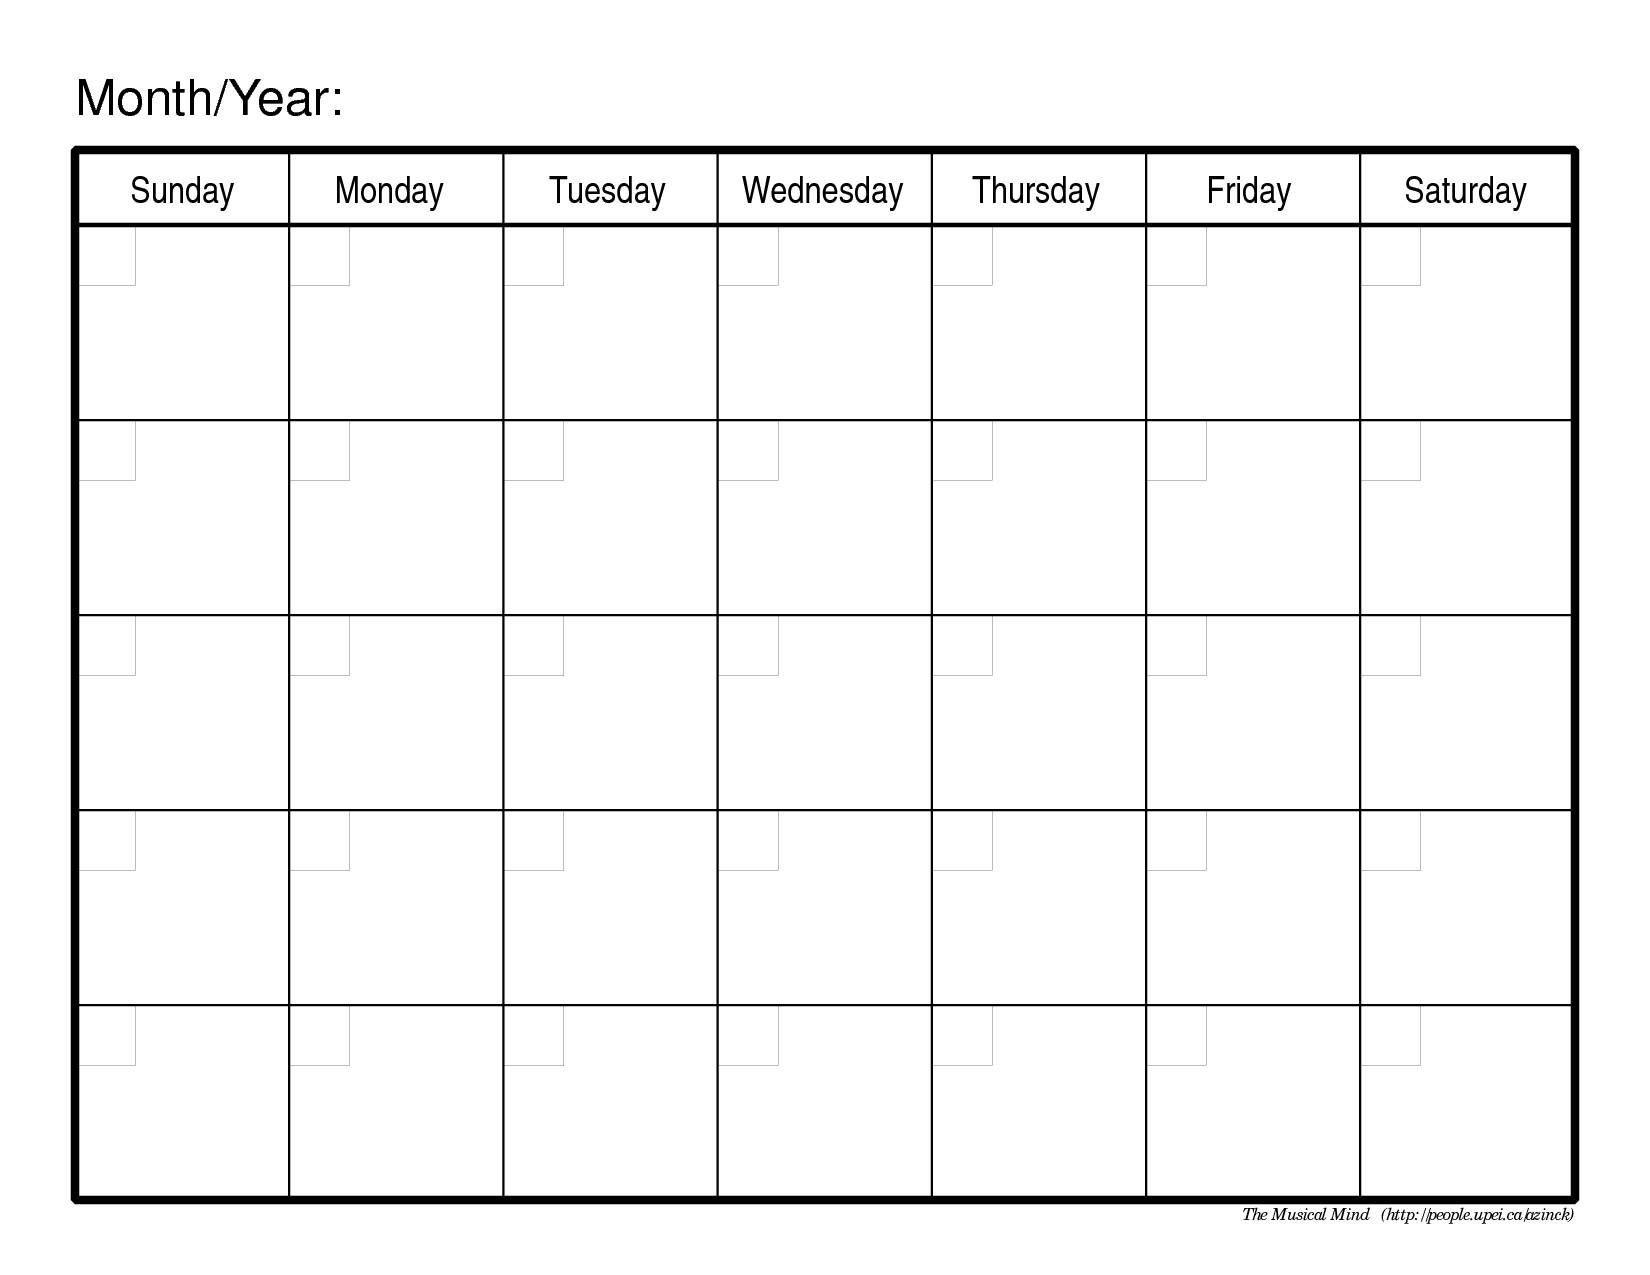 Monthly Calendar No Dates – Printable Week Calendar